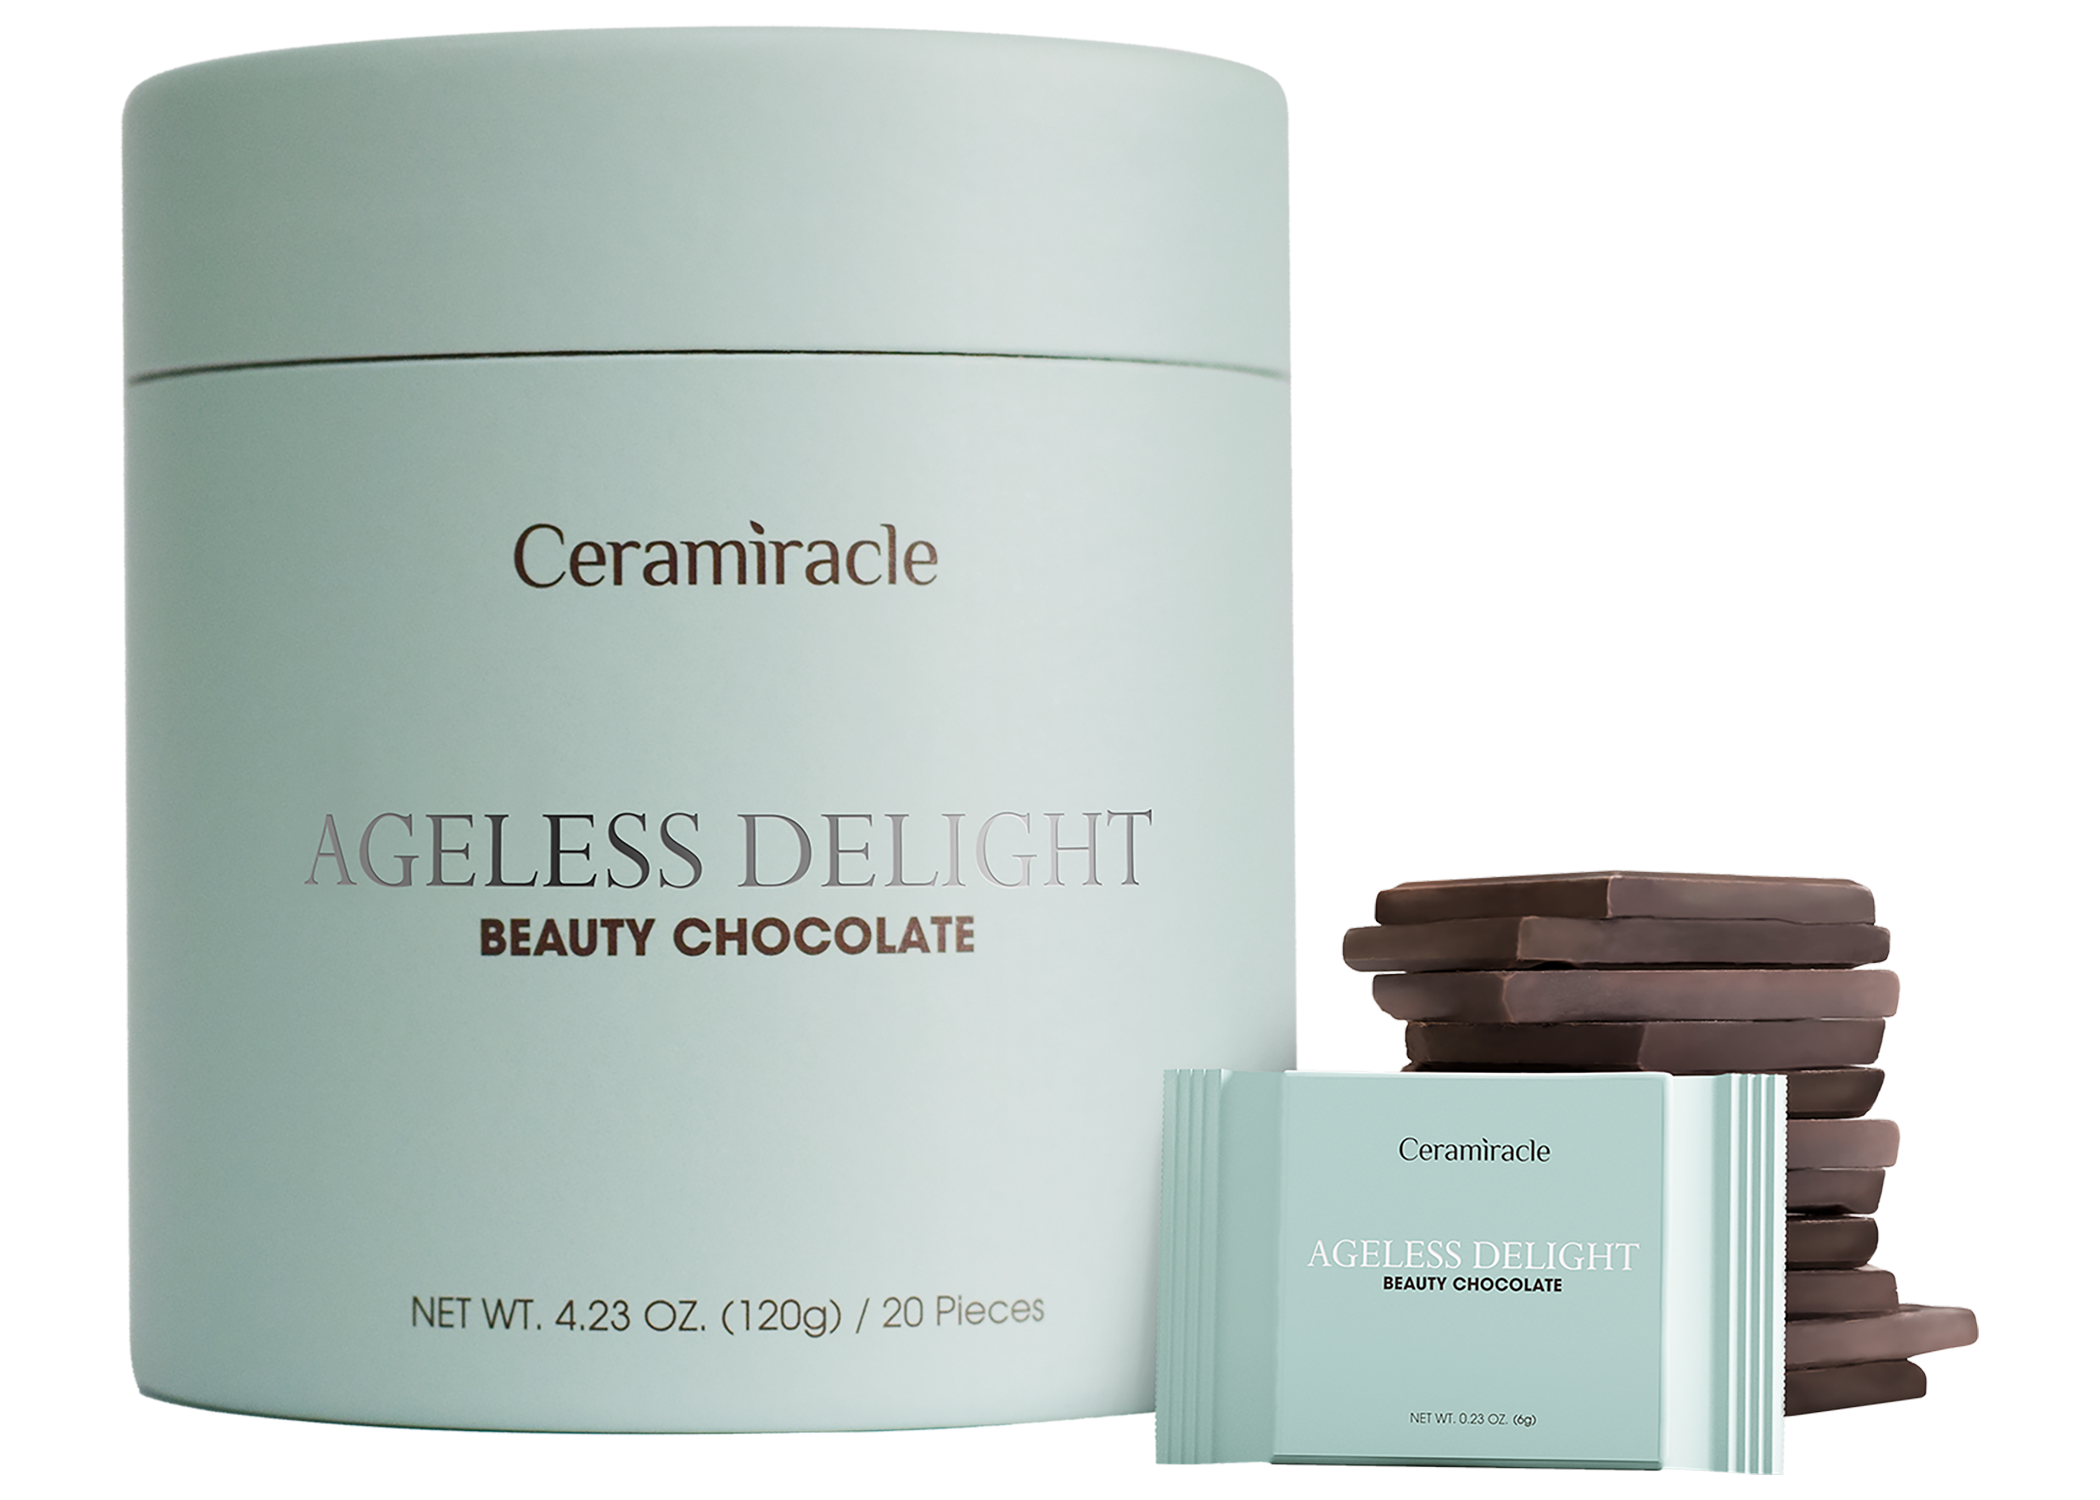 Ceramiracle Ageless Delight Beauty Chocolate Supplement